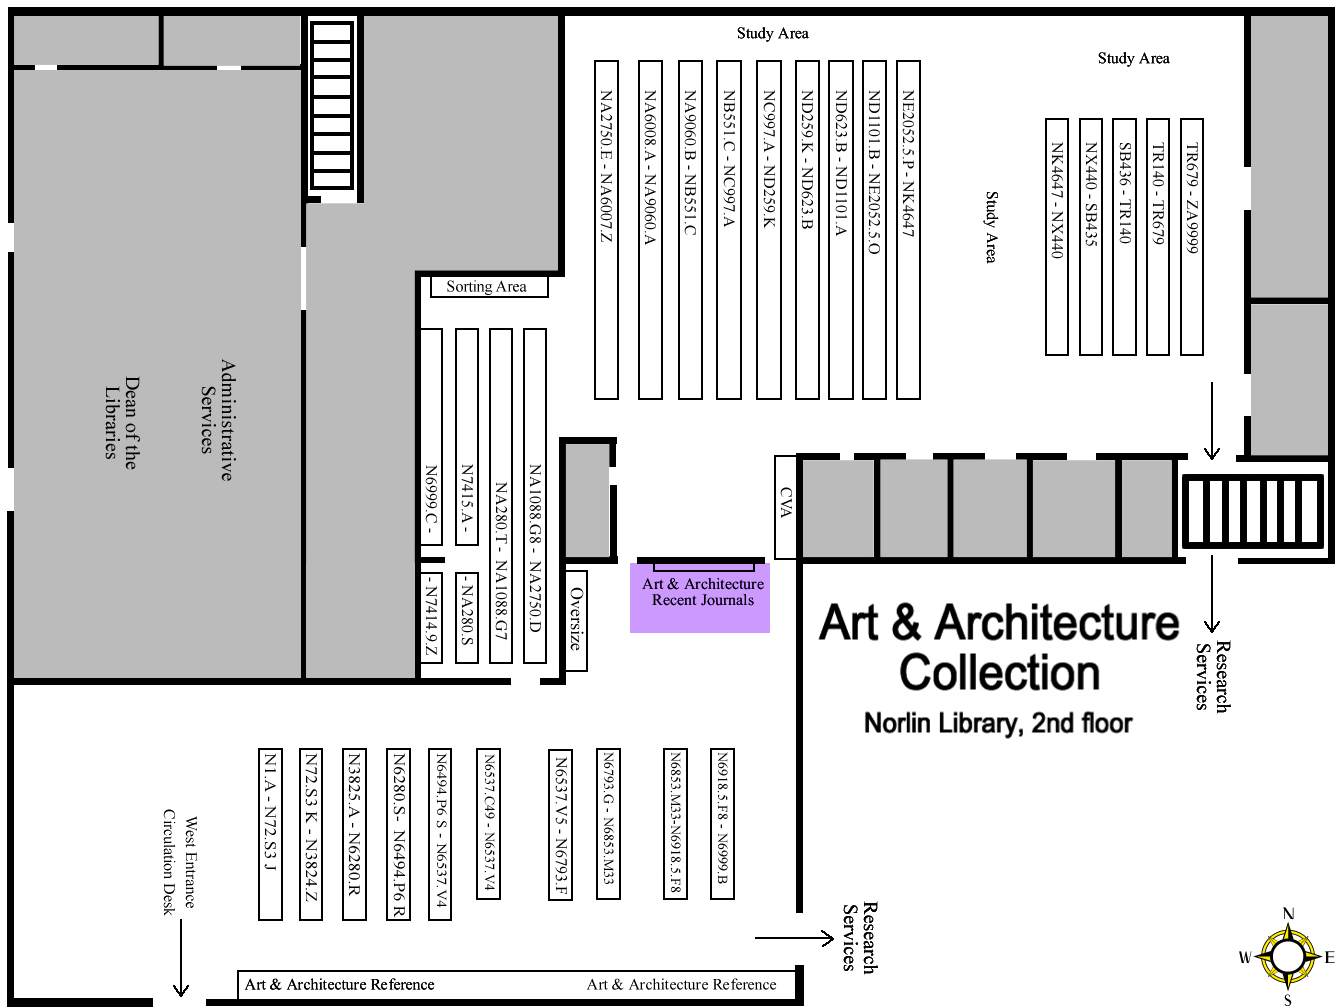 Art & Architecture Periodicals Map